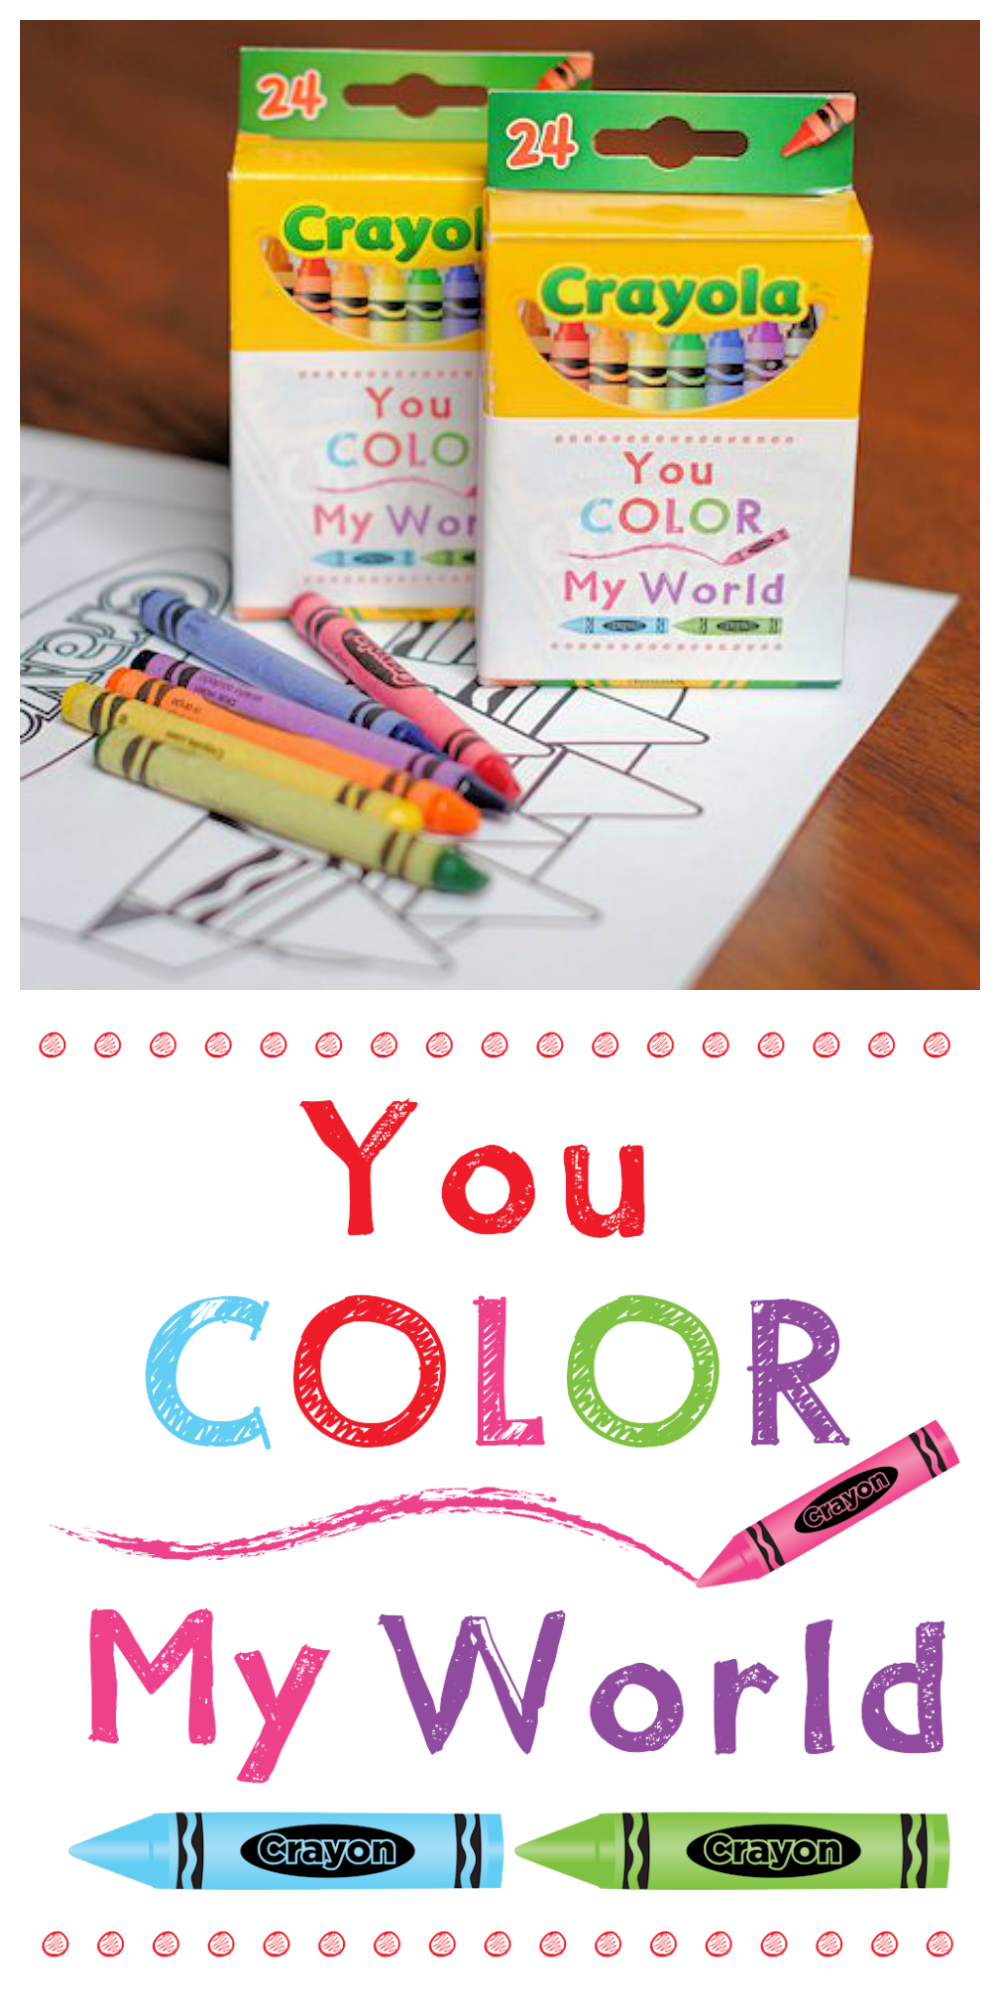 Creative Valentine Idea to Give the Kids or to pass out in class. Wrap this cute Color My World tag around a box of crayons and you've got a simple and fun Valentine Idea! #valentinesday #valentine #valentinesgift